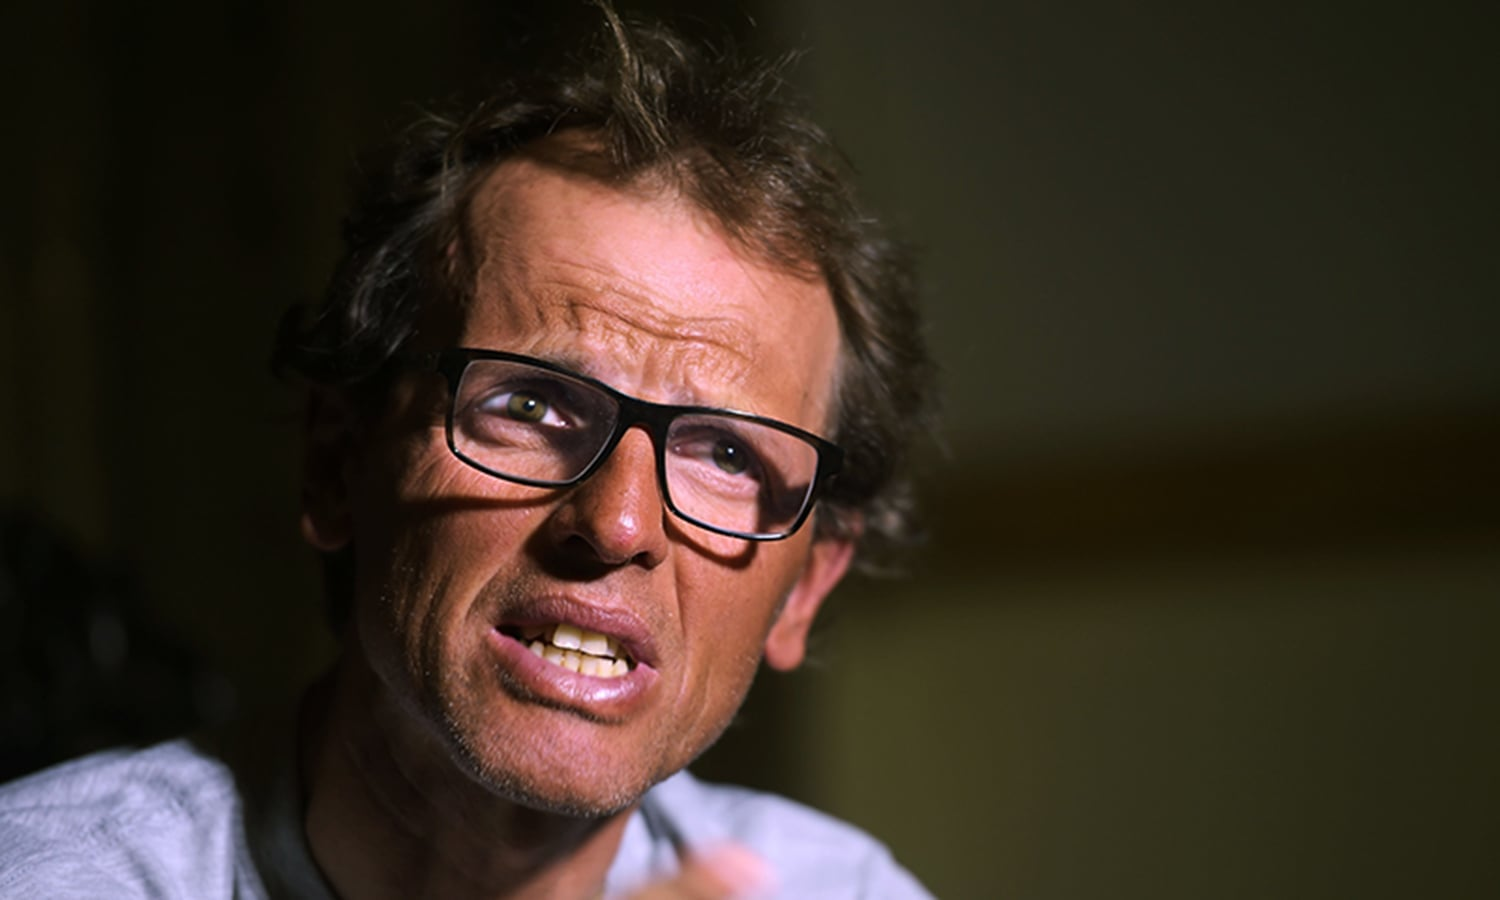 Italian climber Simone Moro, one of the world's leading alpinists, speaks with AFP during an interview in Islamabad.—AFP